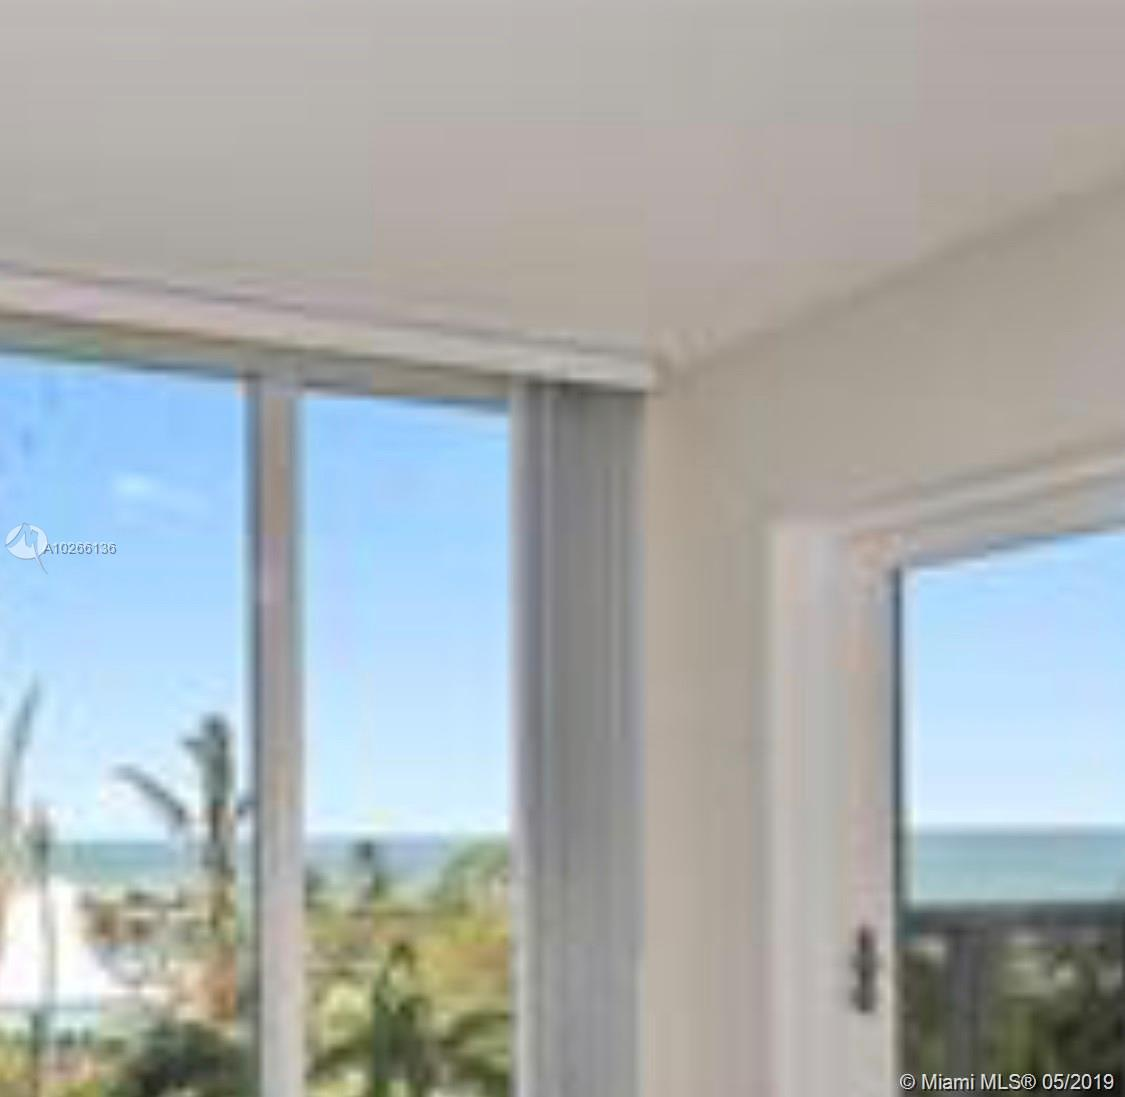 REDUCED TO SELL: One of the best lines in the glamorously  remodeled  Harbour House; 1 bedroom/1.5 bath with ocean view balcony. Italian cabinetry; stainless appliances; resort style amenities: fitness center, spa, theatre, fresh food café & market delivering poolside, beach , and in room; chaise & umbrella service; 24 hr concierge, valet, security. Walk to Bal Harbour Shops, fine dining, Houses of Worship...sun/surf/wine/dine in exclusive Bal Harbour Beach.